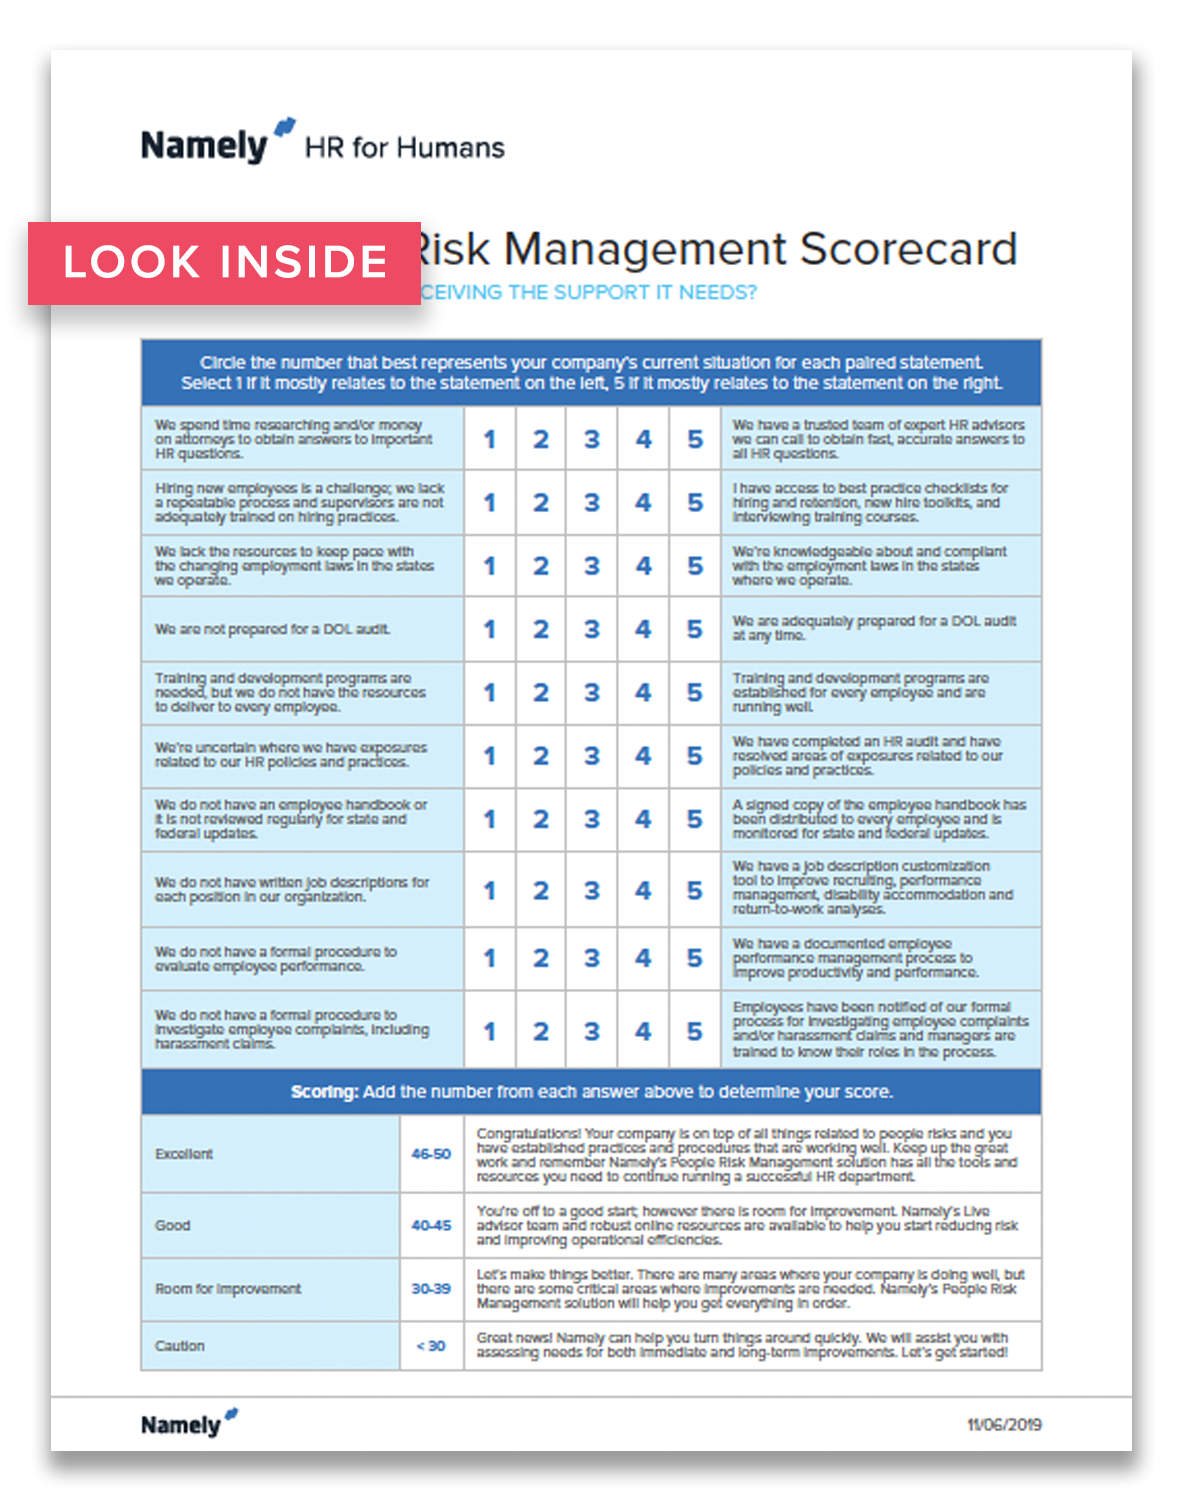 Risk management scorecard